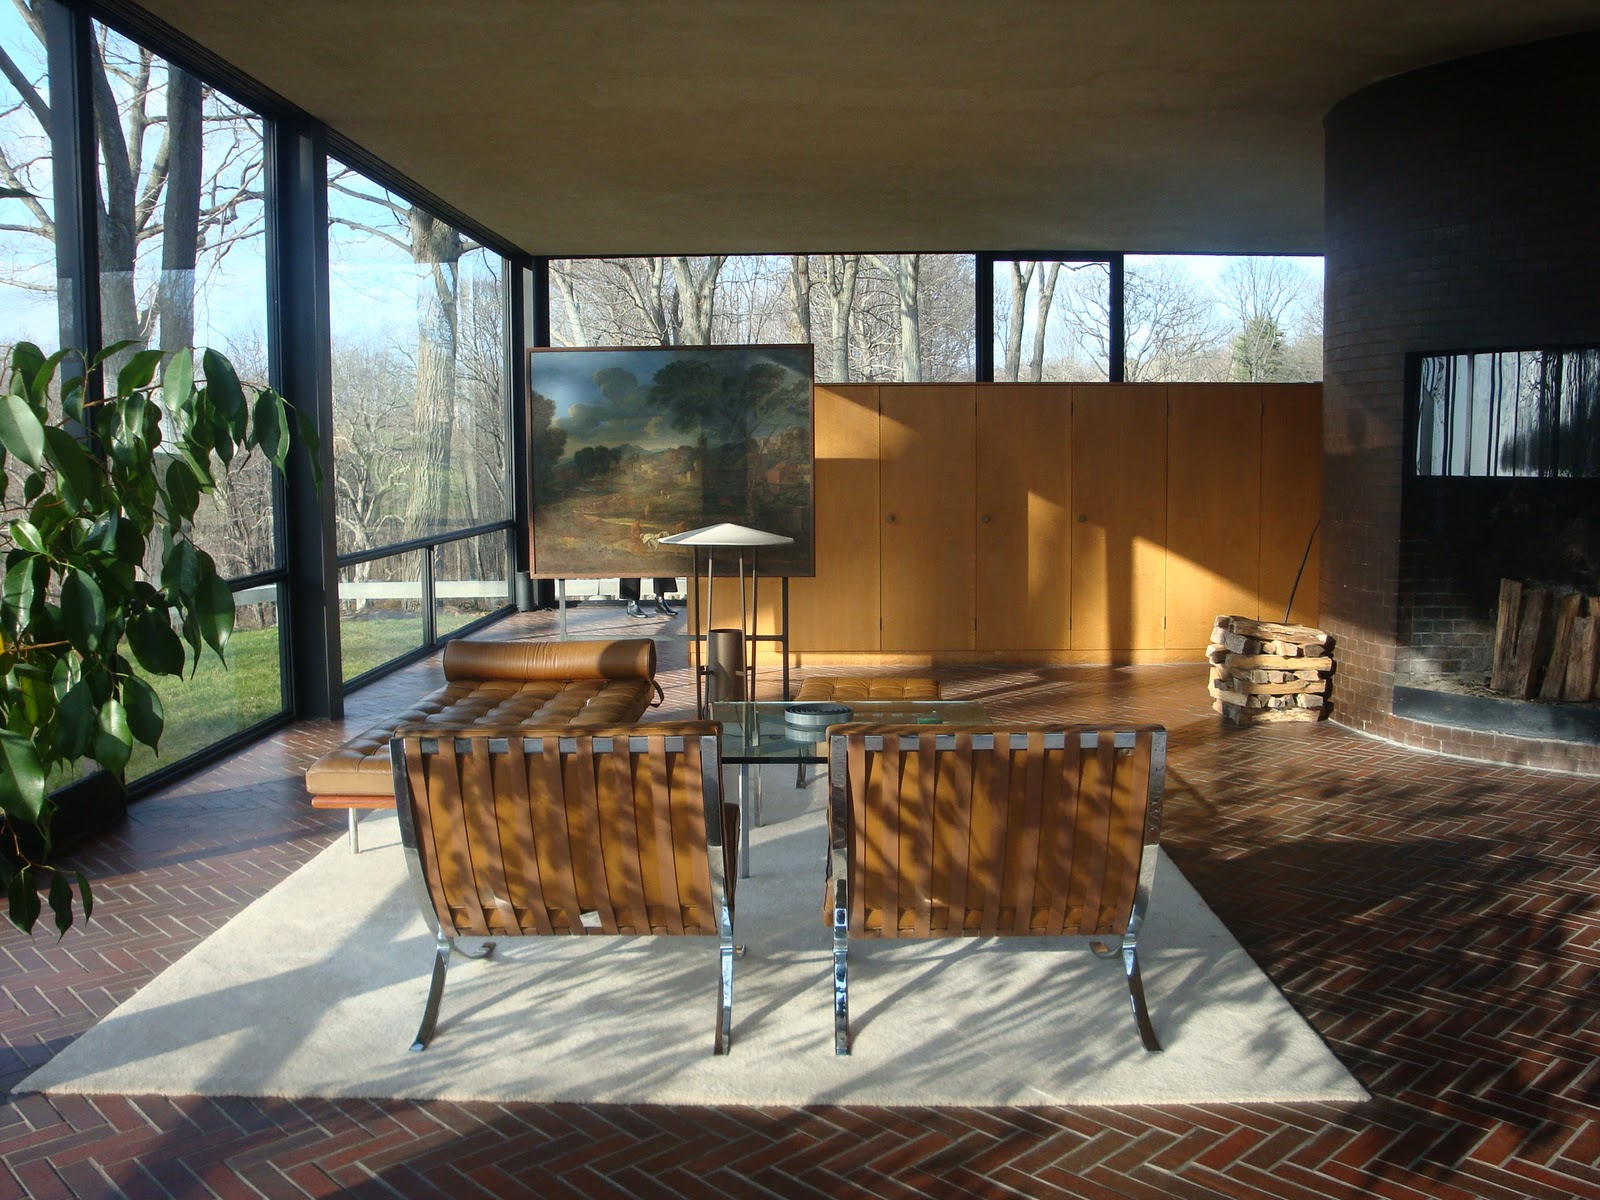 Glass House, New Canaan, CT. Designed by Philip Johnson, 1949.